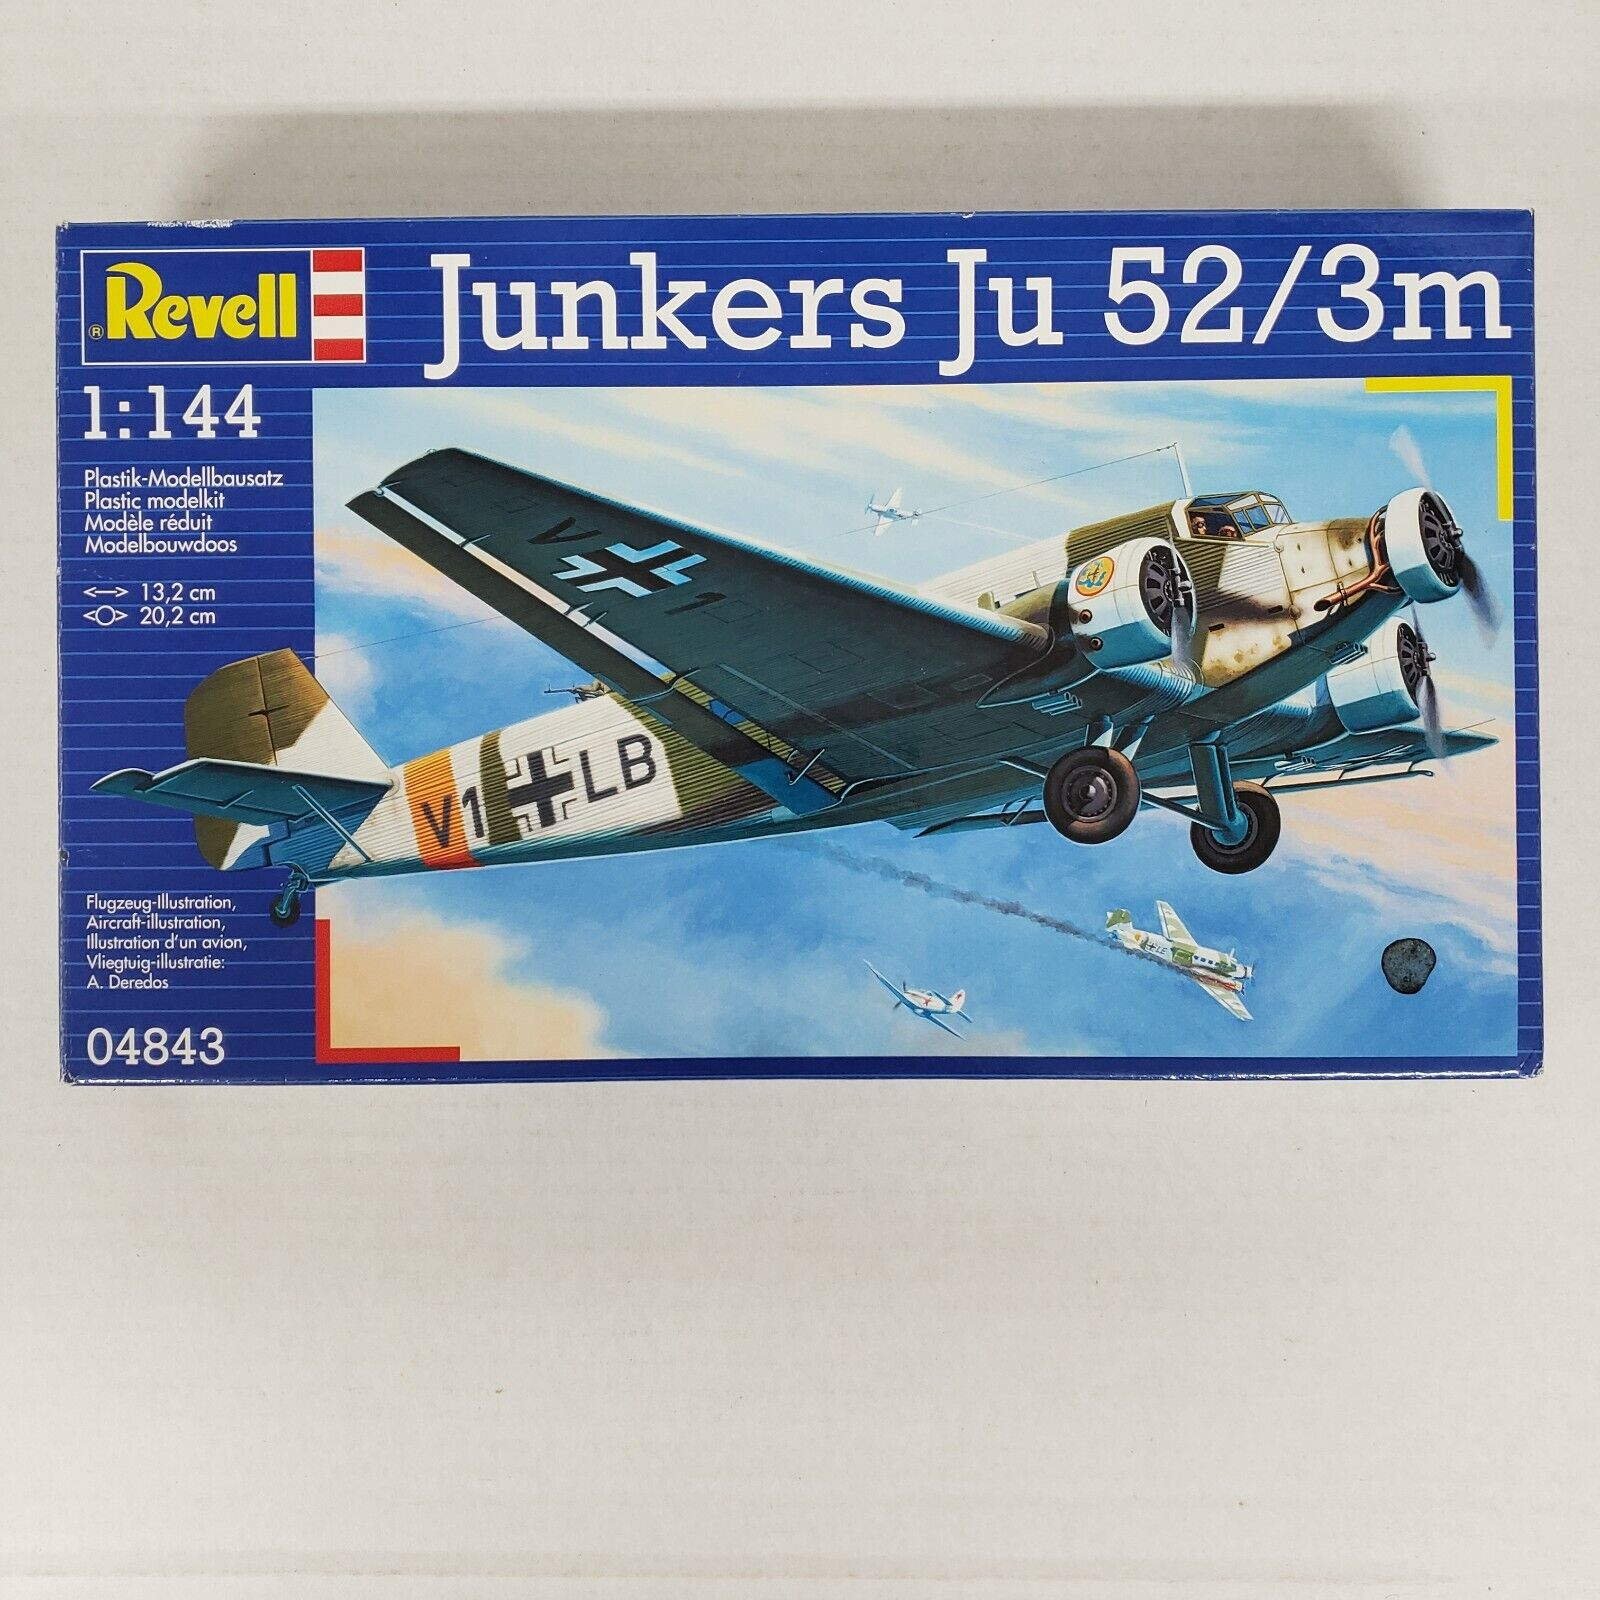 Revell Junkers Ju 52/3m 1 144 Scale Model 04843 OPEN BOX NEW  - $29.99